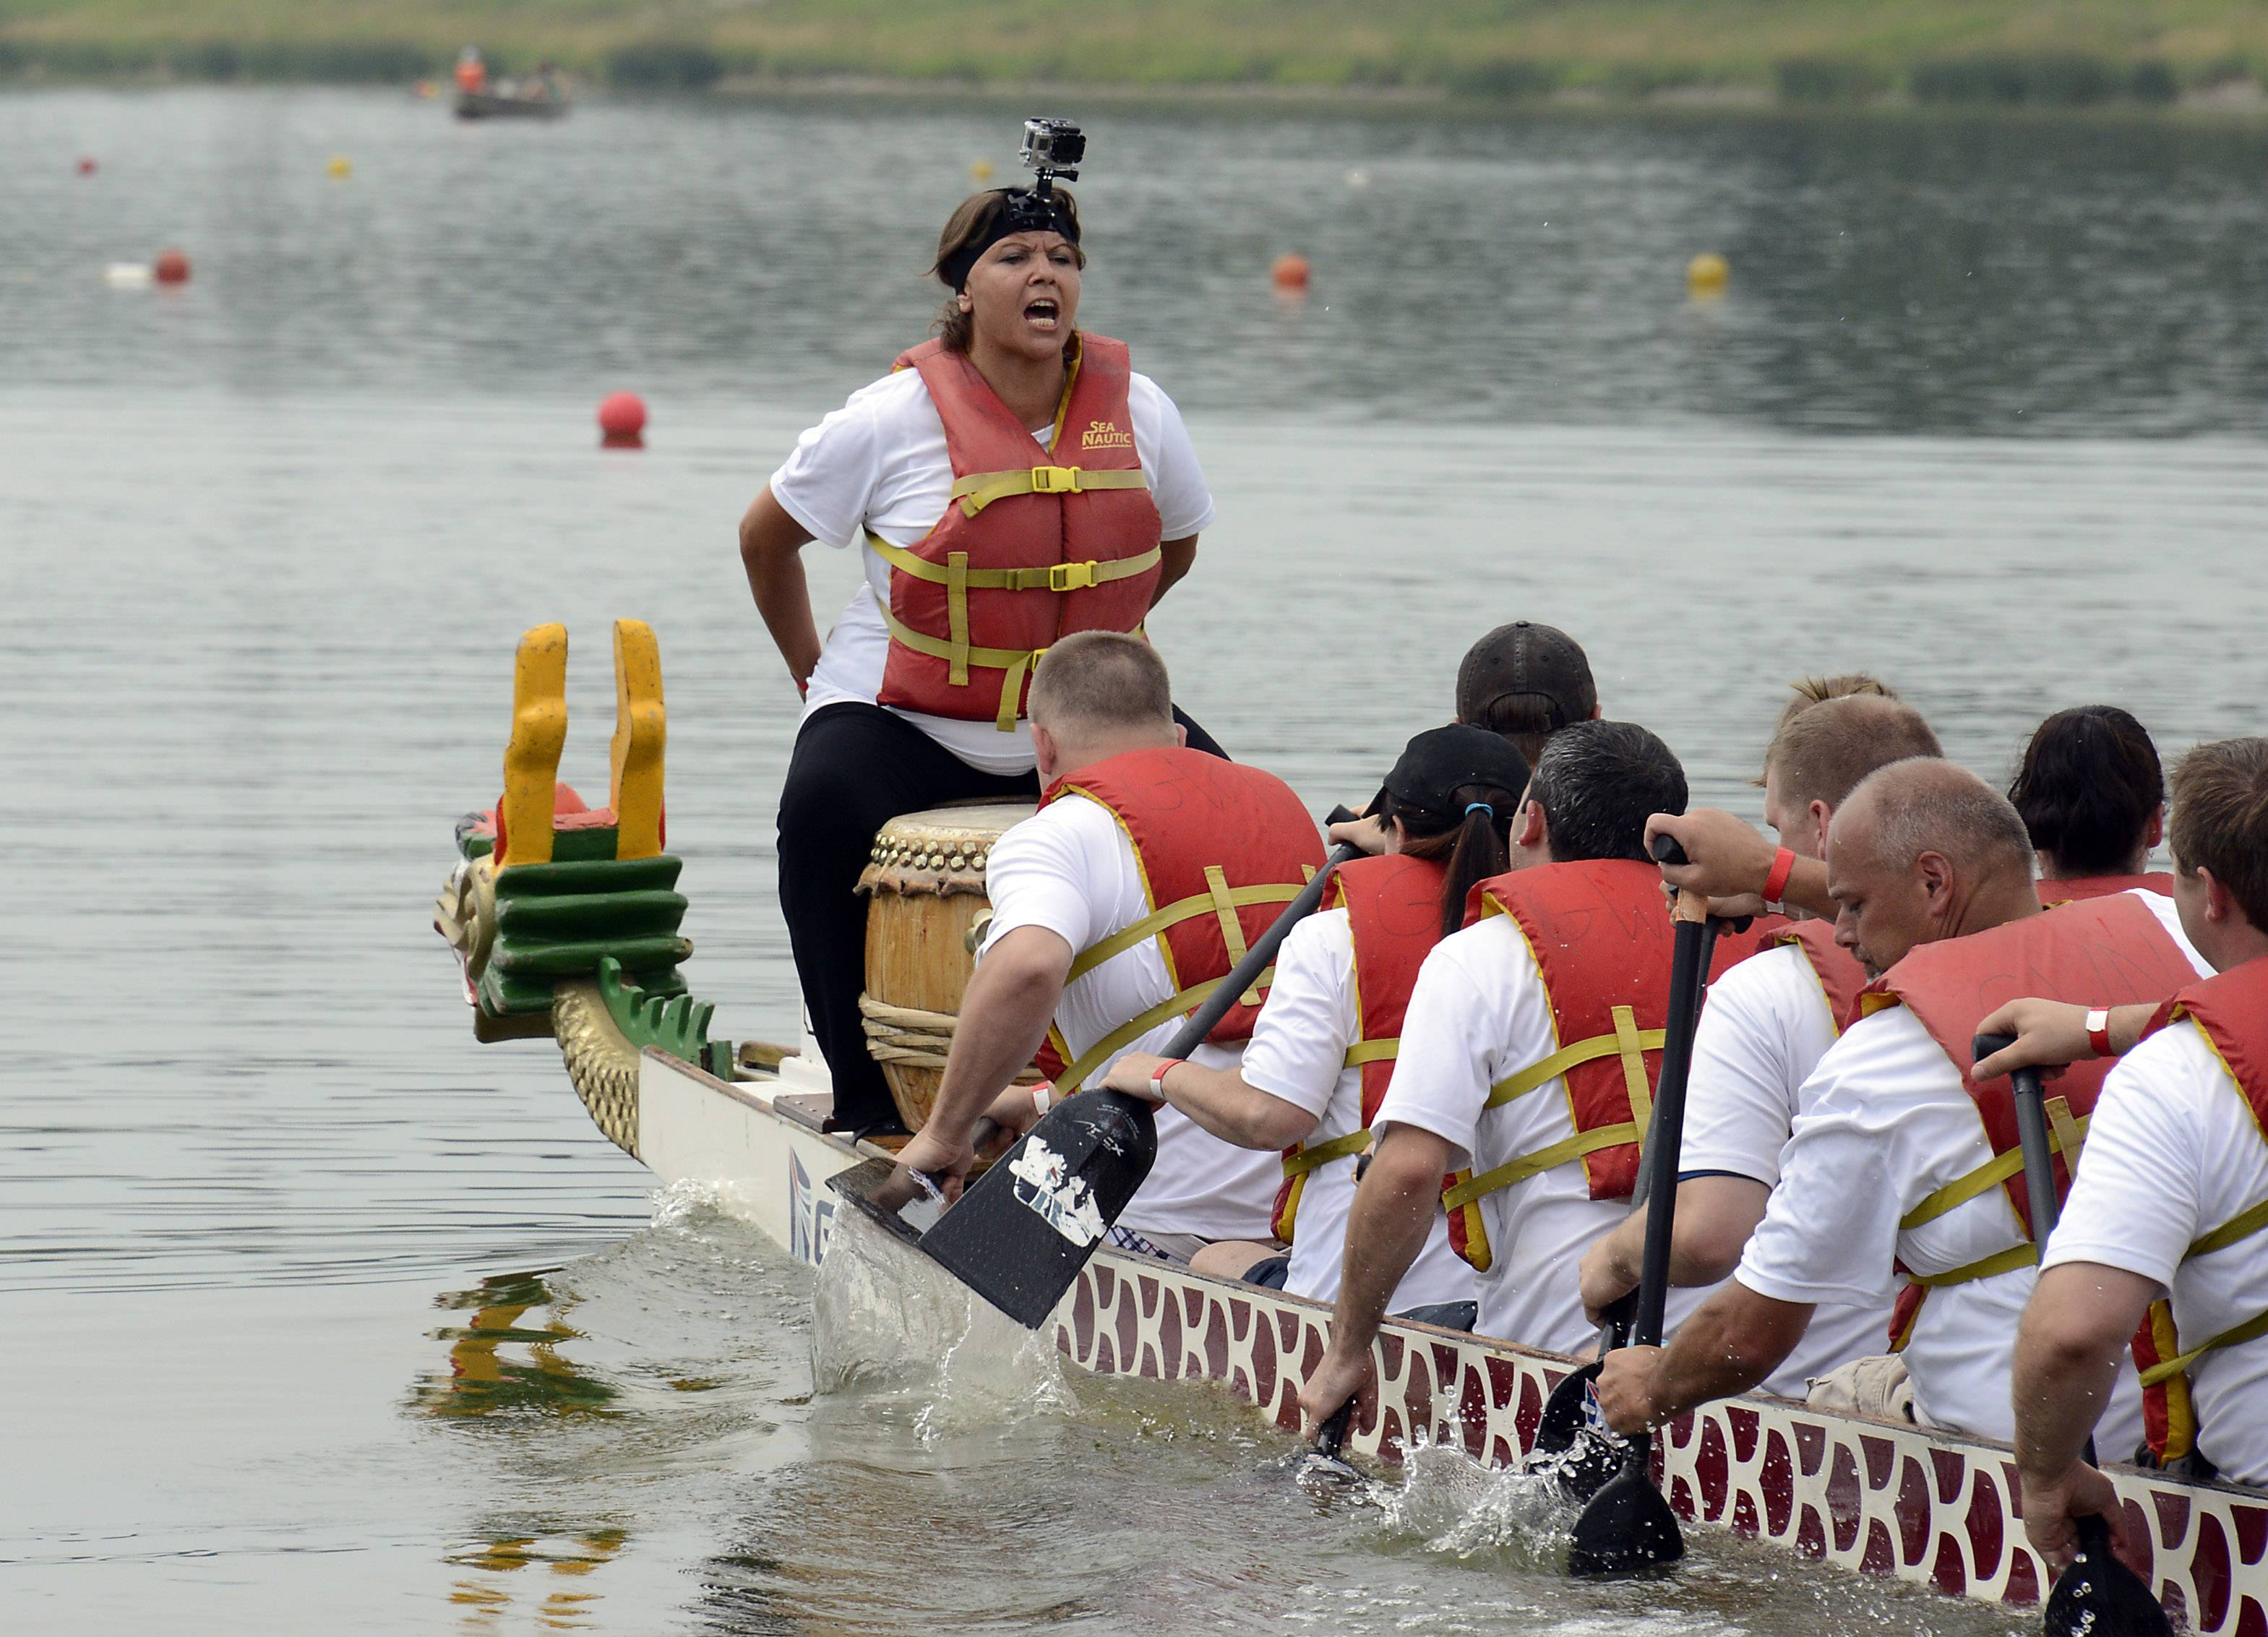 Christine Cartina of Mundelein calls out the beat for the Walgreens Dragon Boat team Pharma-Seas on Saturday at Lake Arlington.